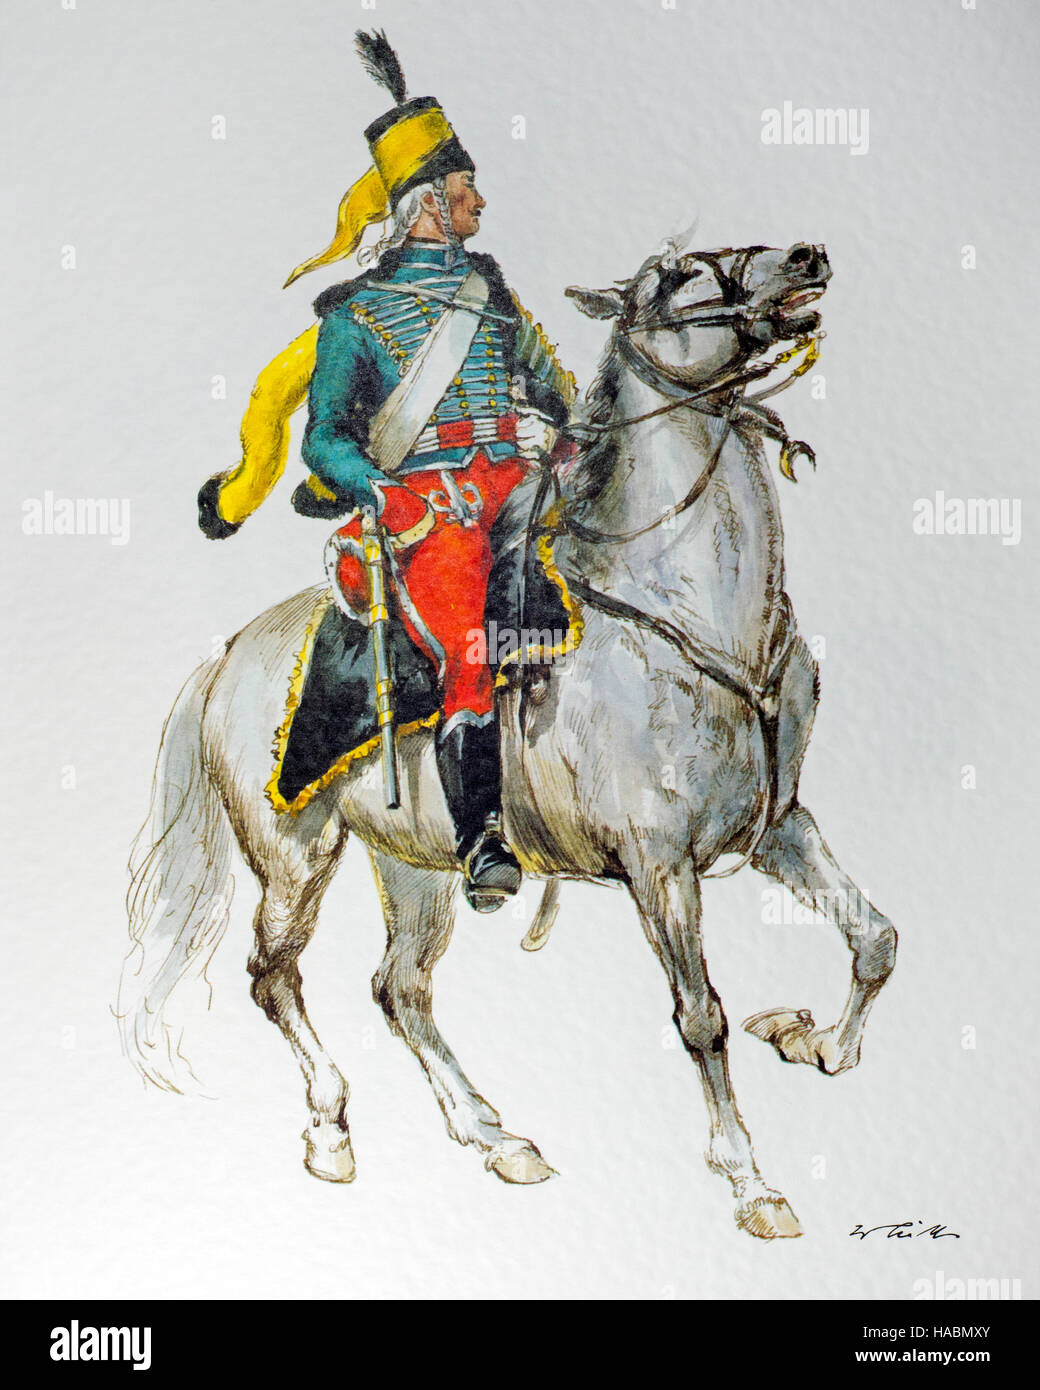 Hussar guide on horseback in uniform of the 1797 German army in the French Republic - Stock Image